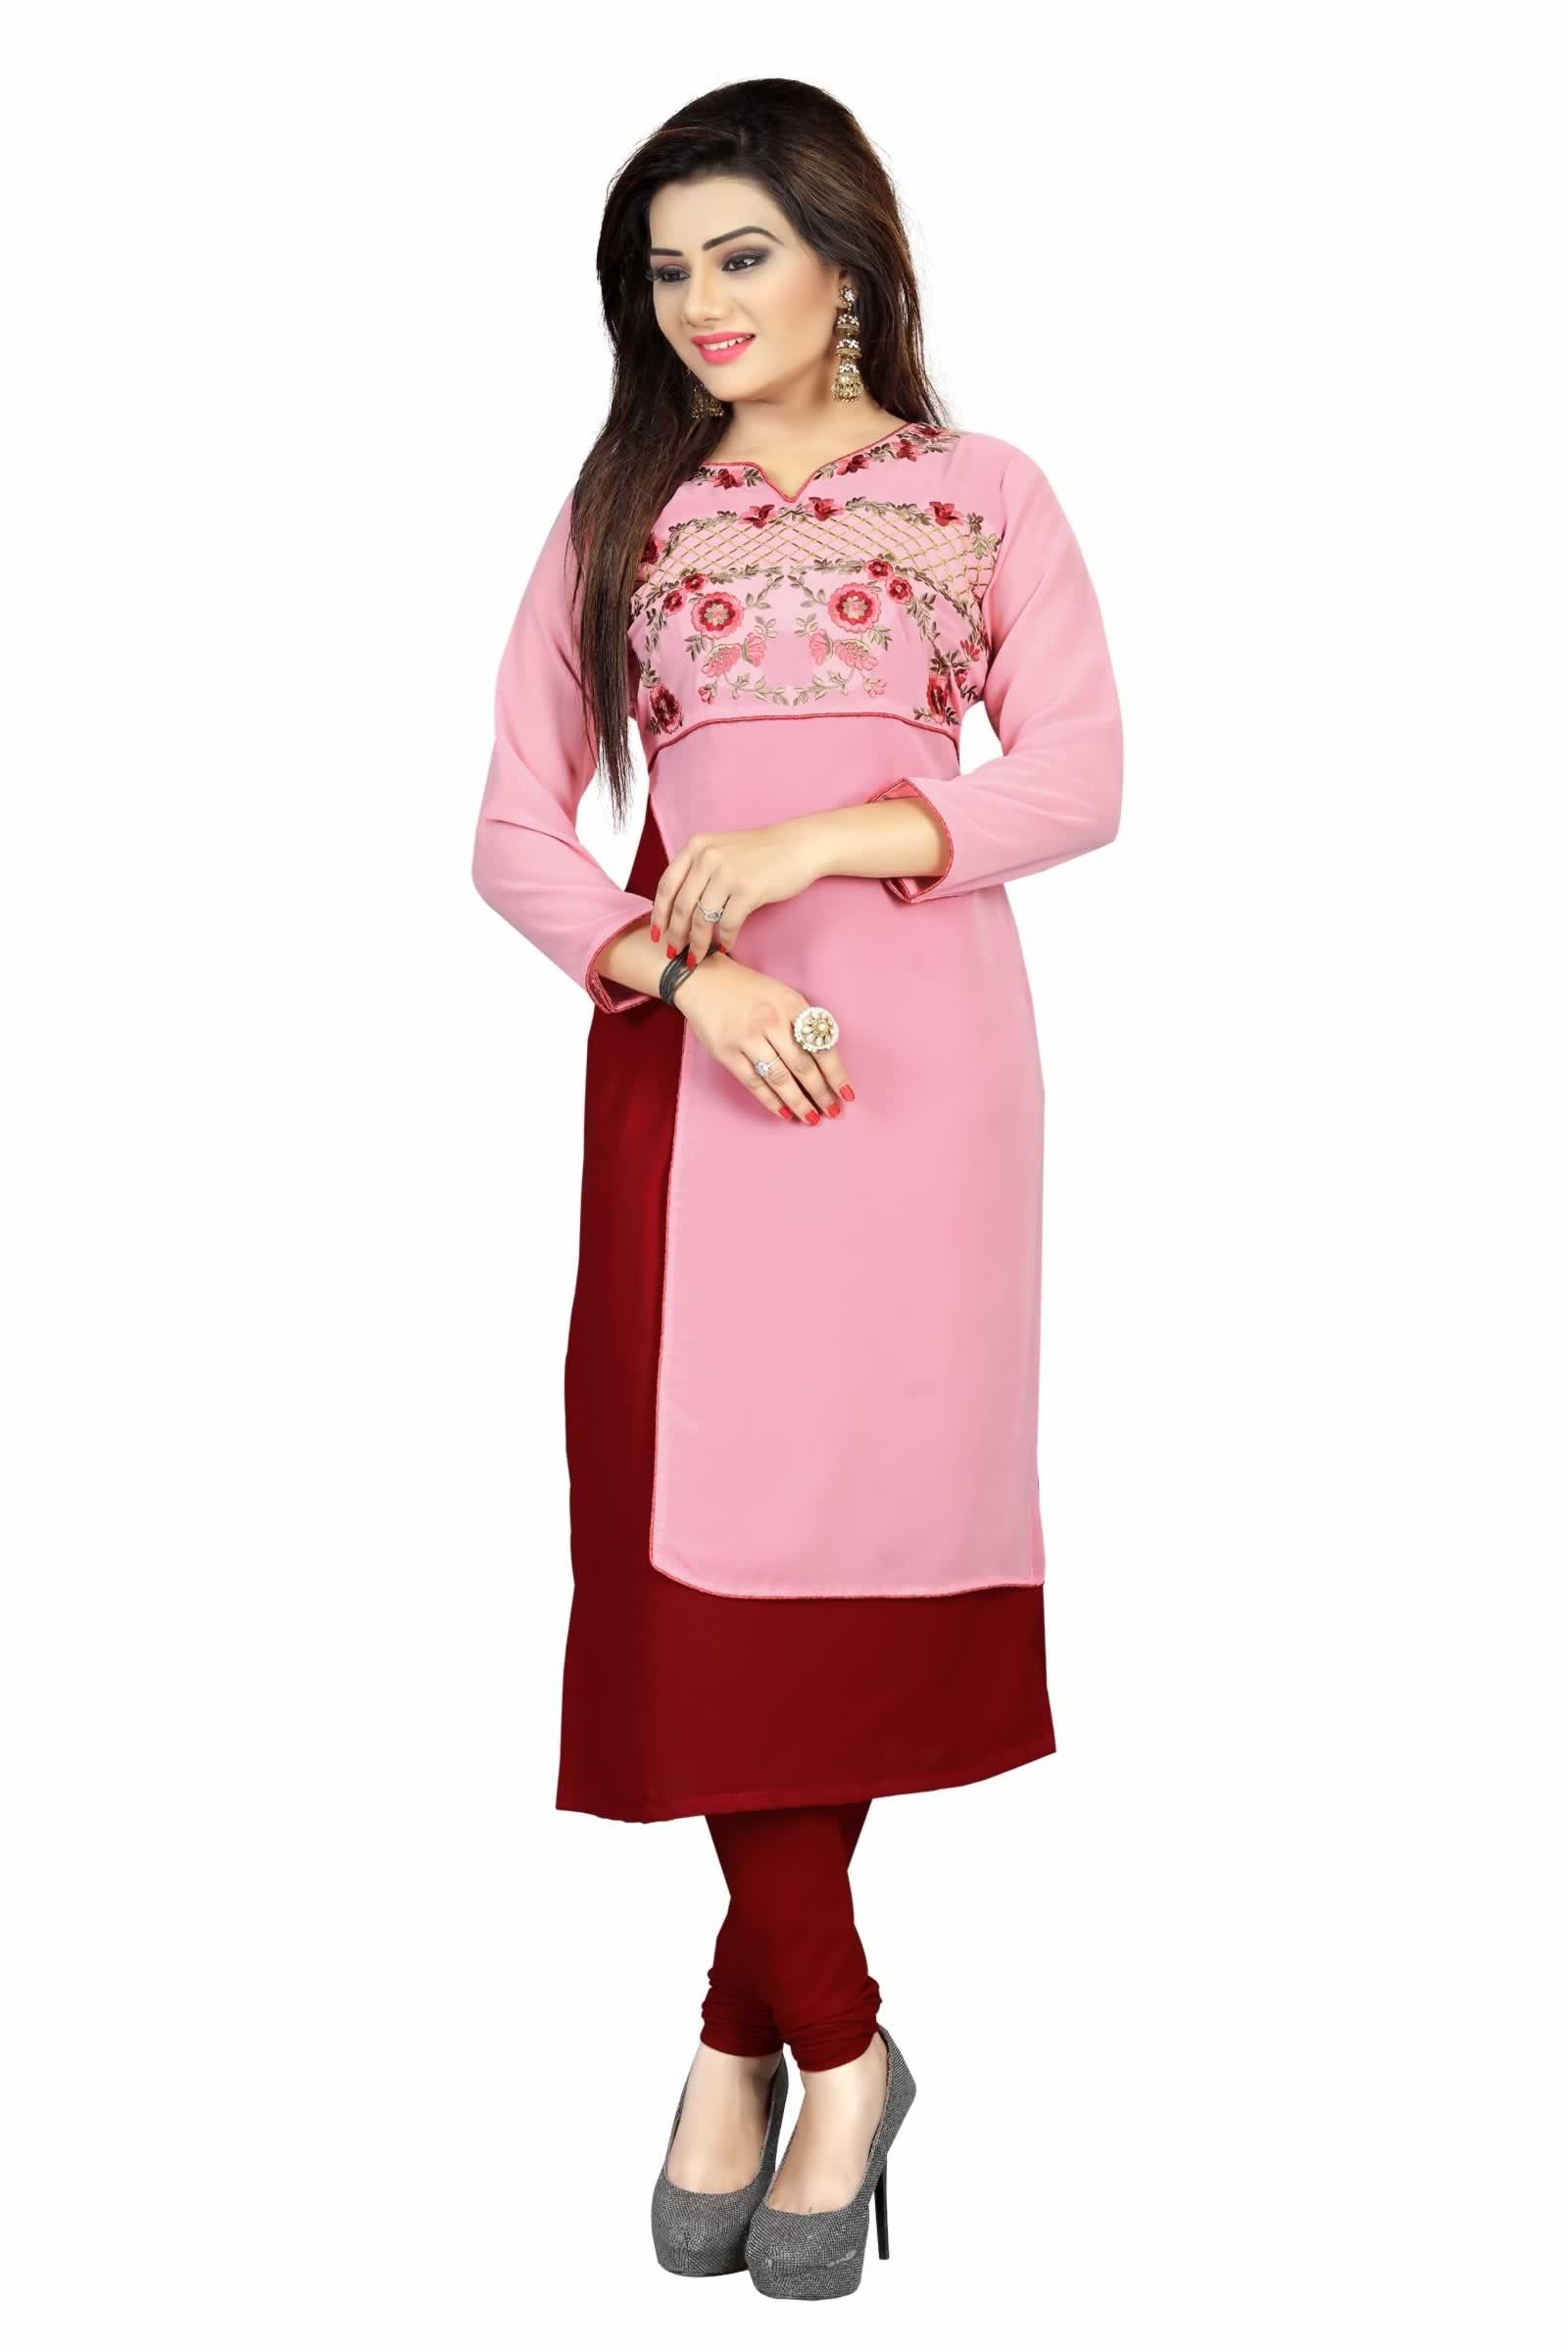 674319cb3 buy saree online Pink and Maroon Colour Faux Georgette Party Wear Kurti Buy  Saree online - Buy Sarees online